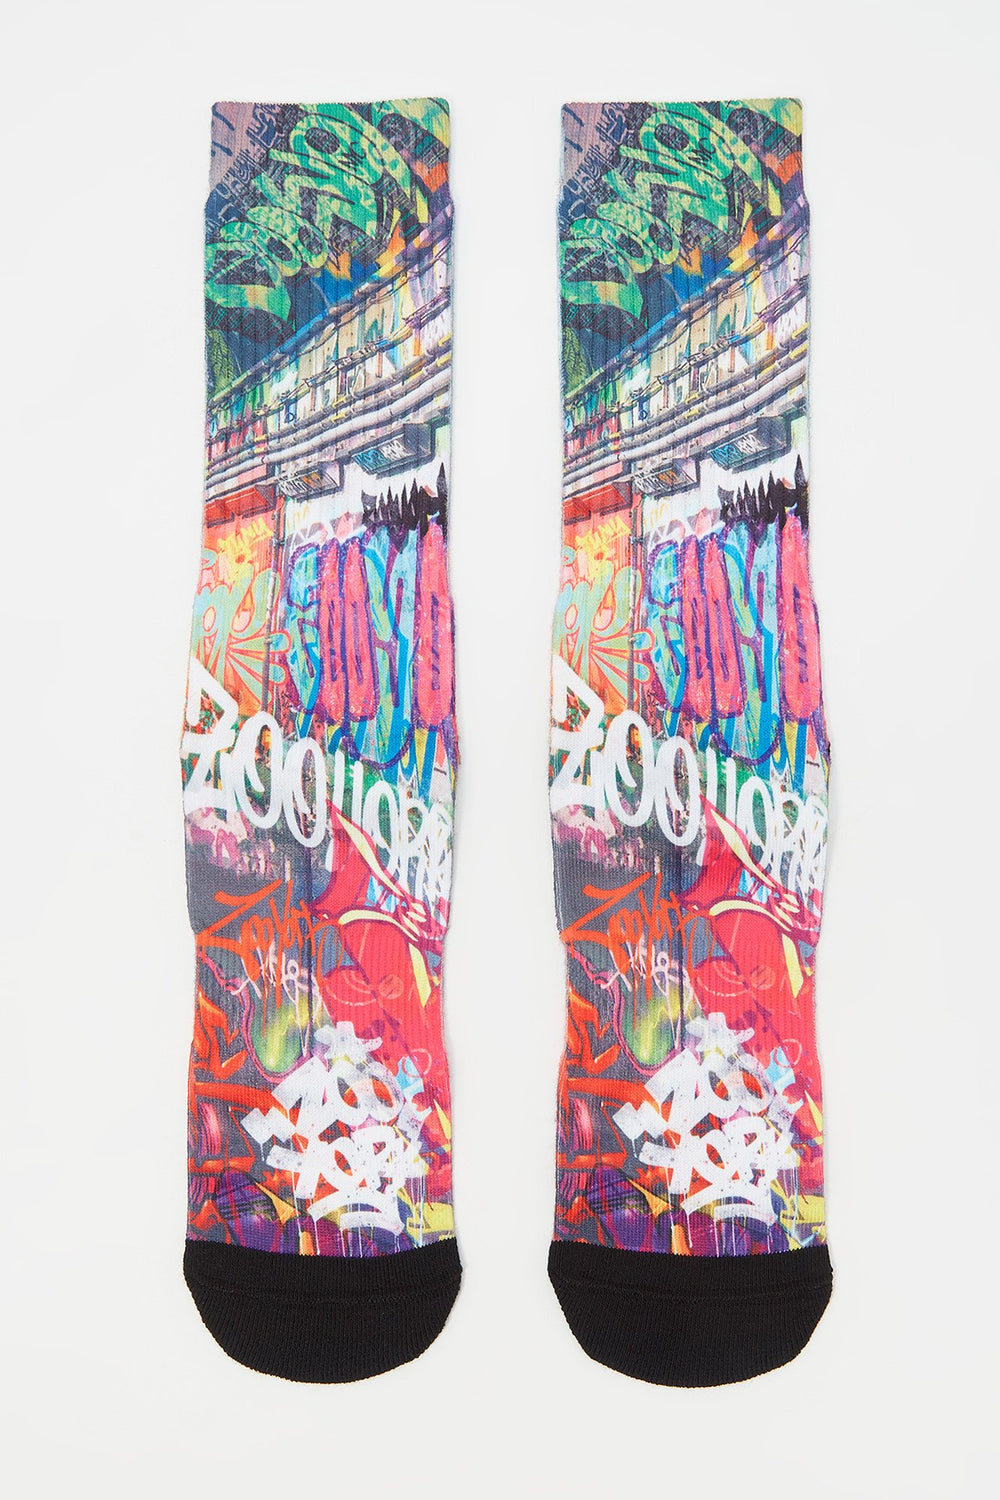 Zoo York Mens Graffiti Crew Socks Pink